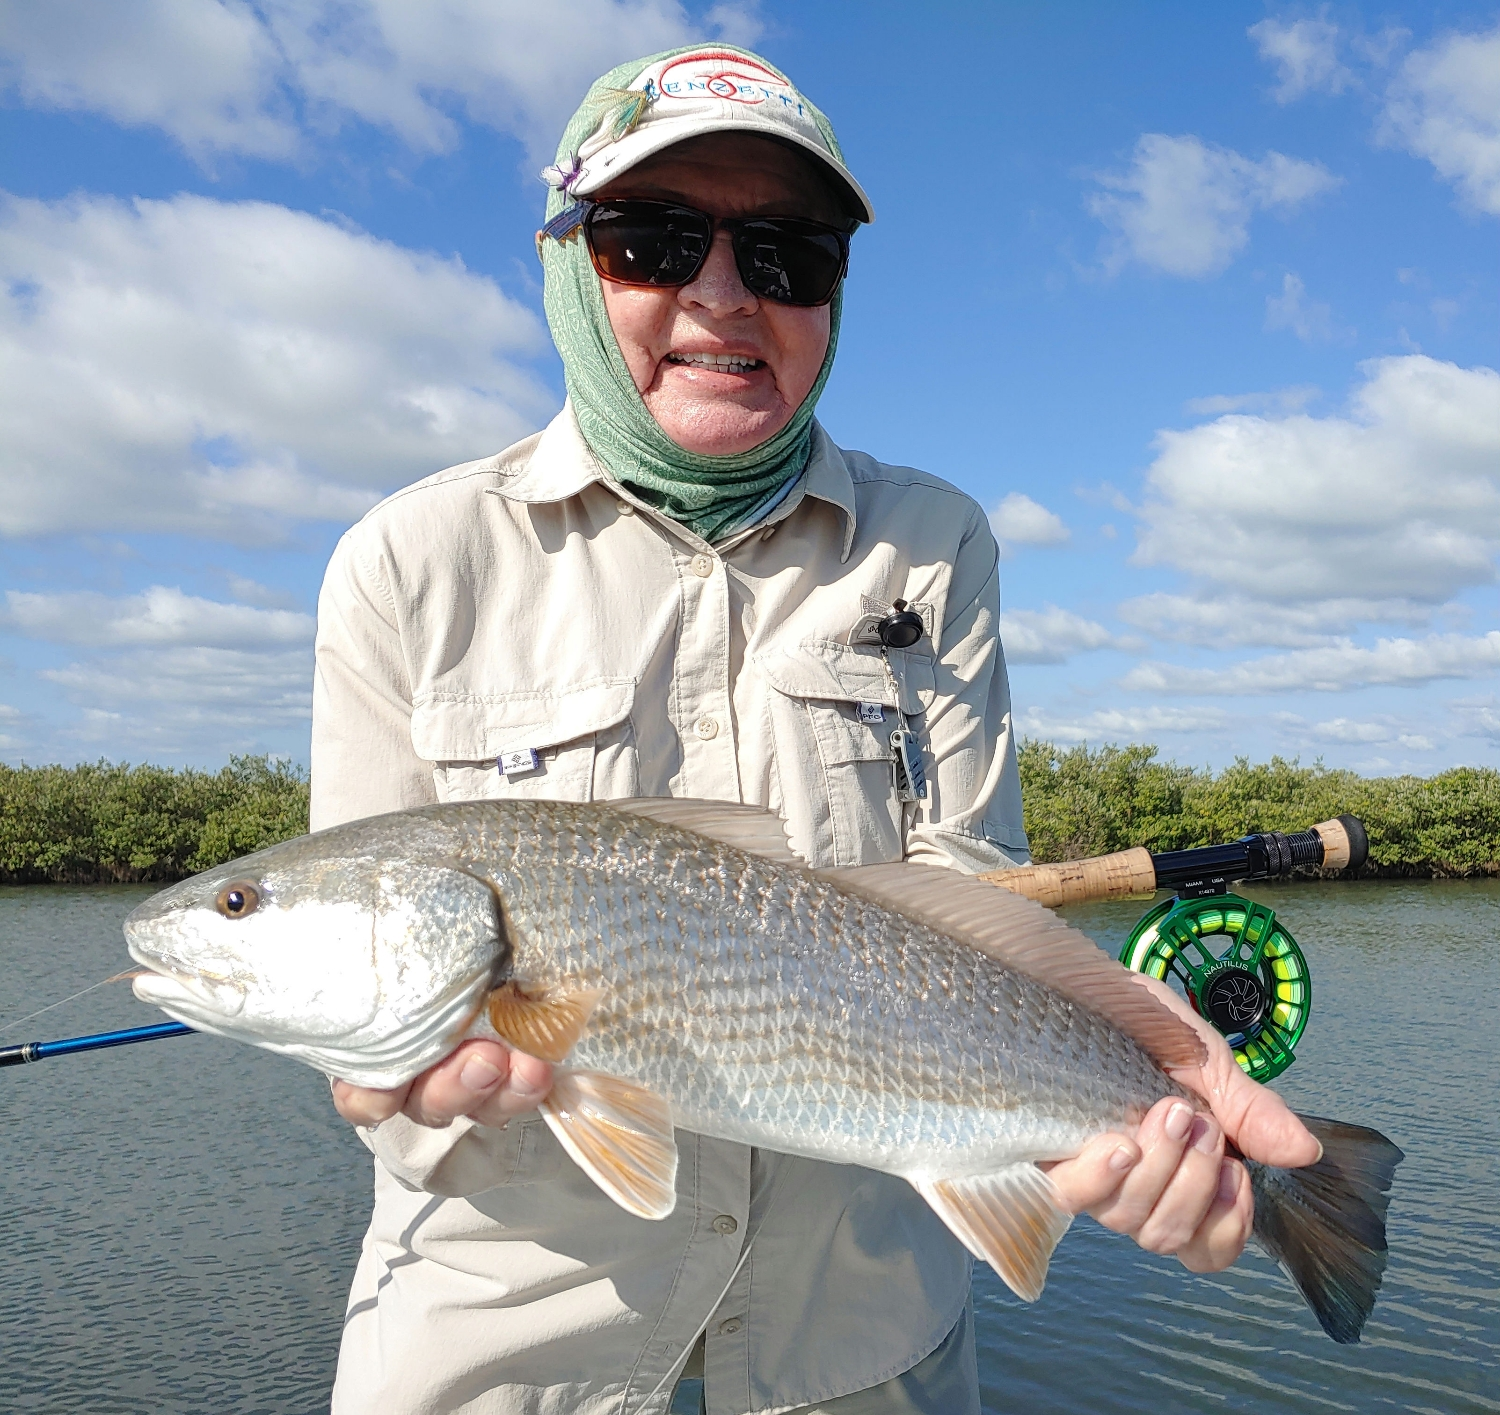 Redfish|Captain John Tarr|Tailhunter Outdoor Adventures